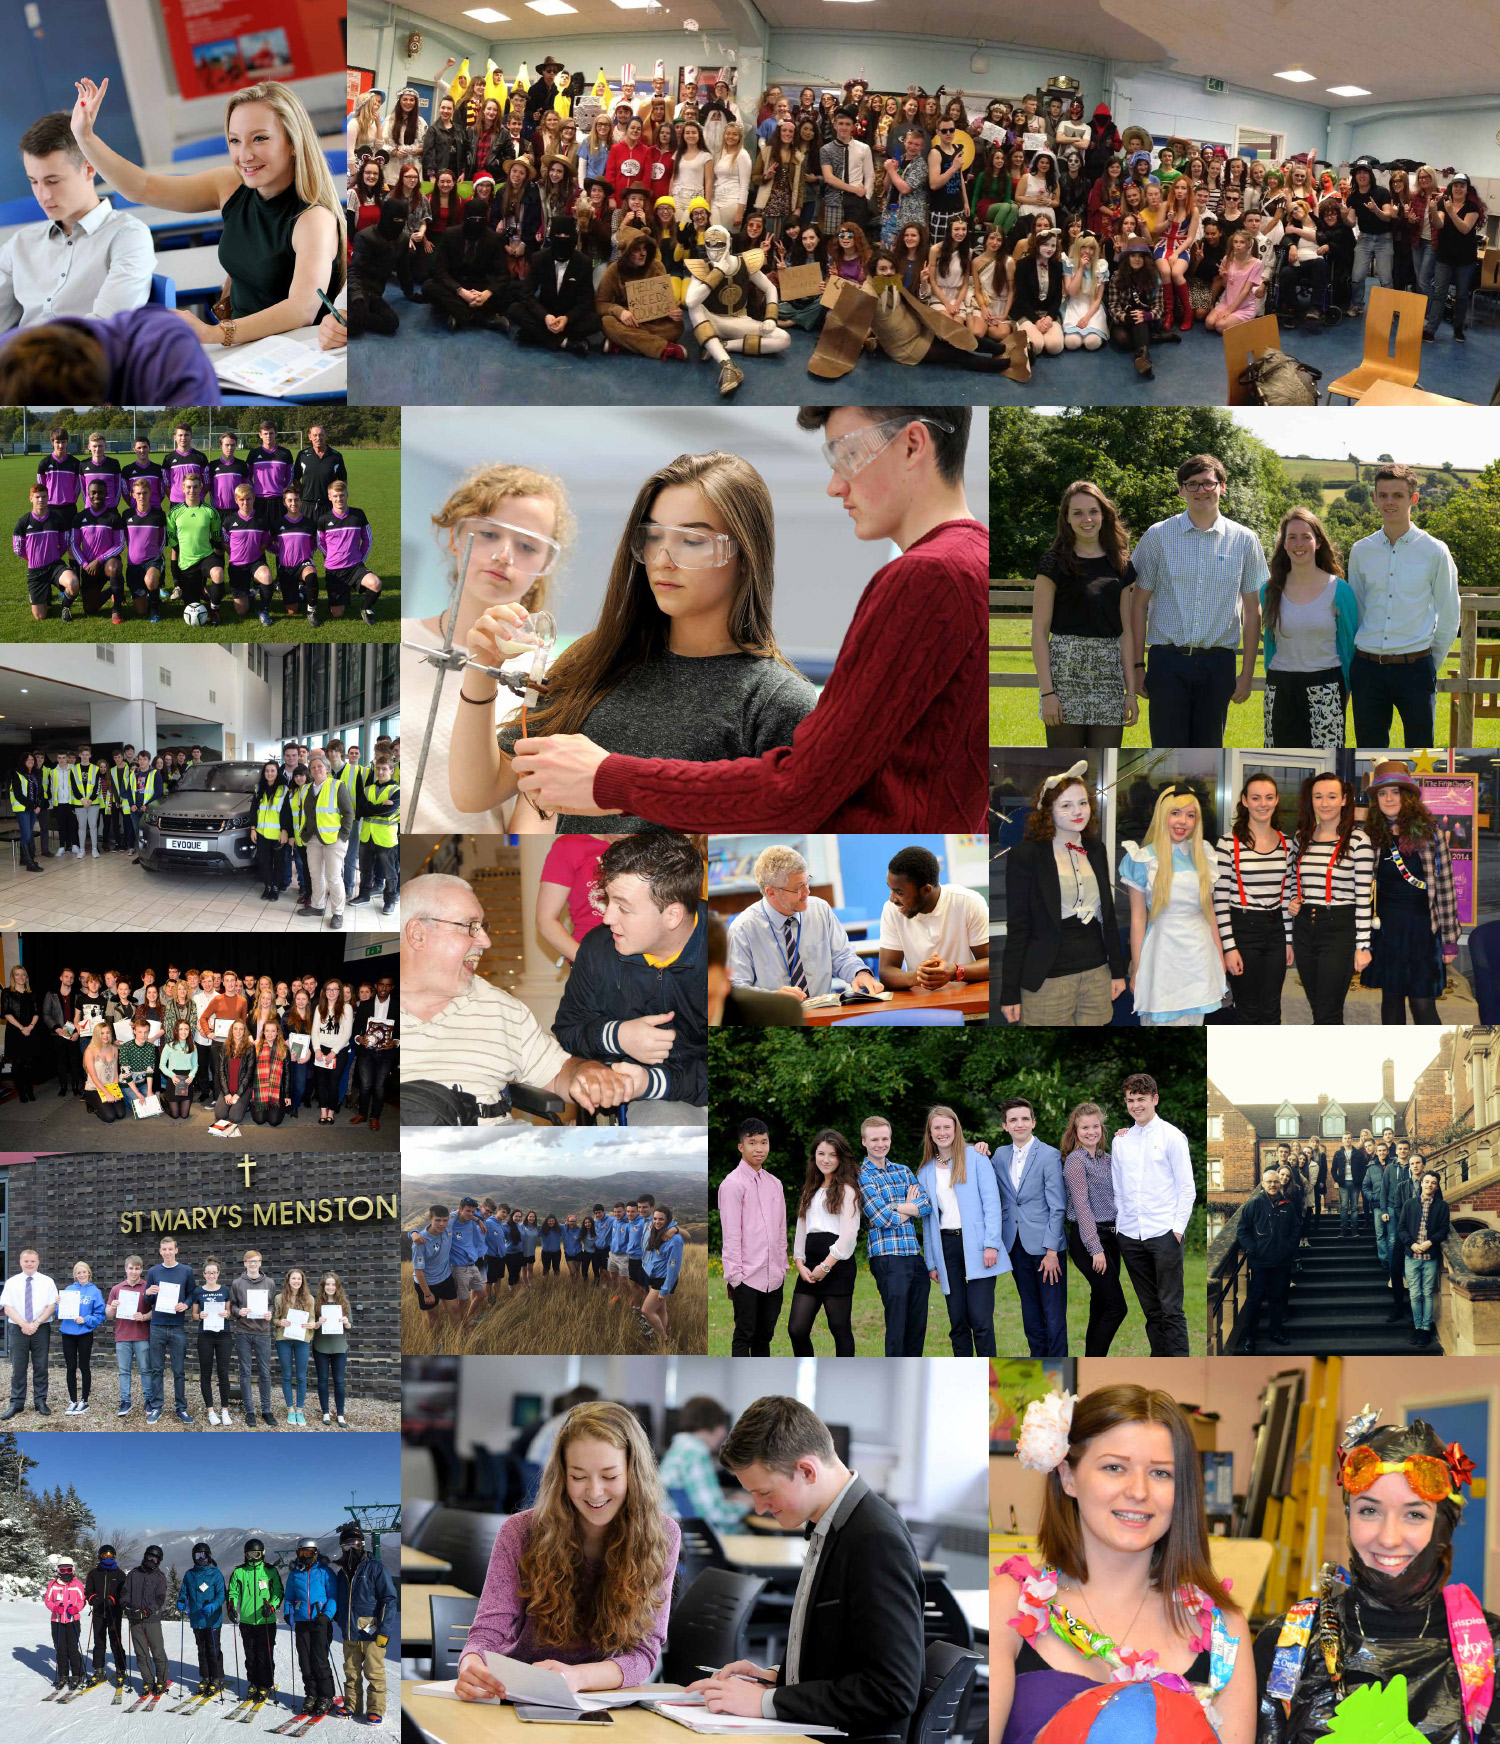 Collage showing the Sixth Form at St. Mary's Menston